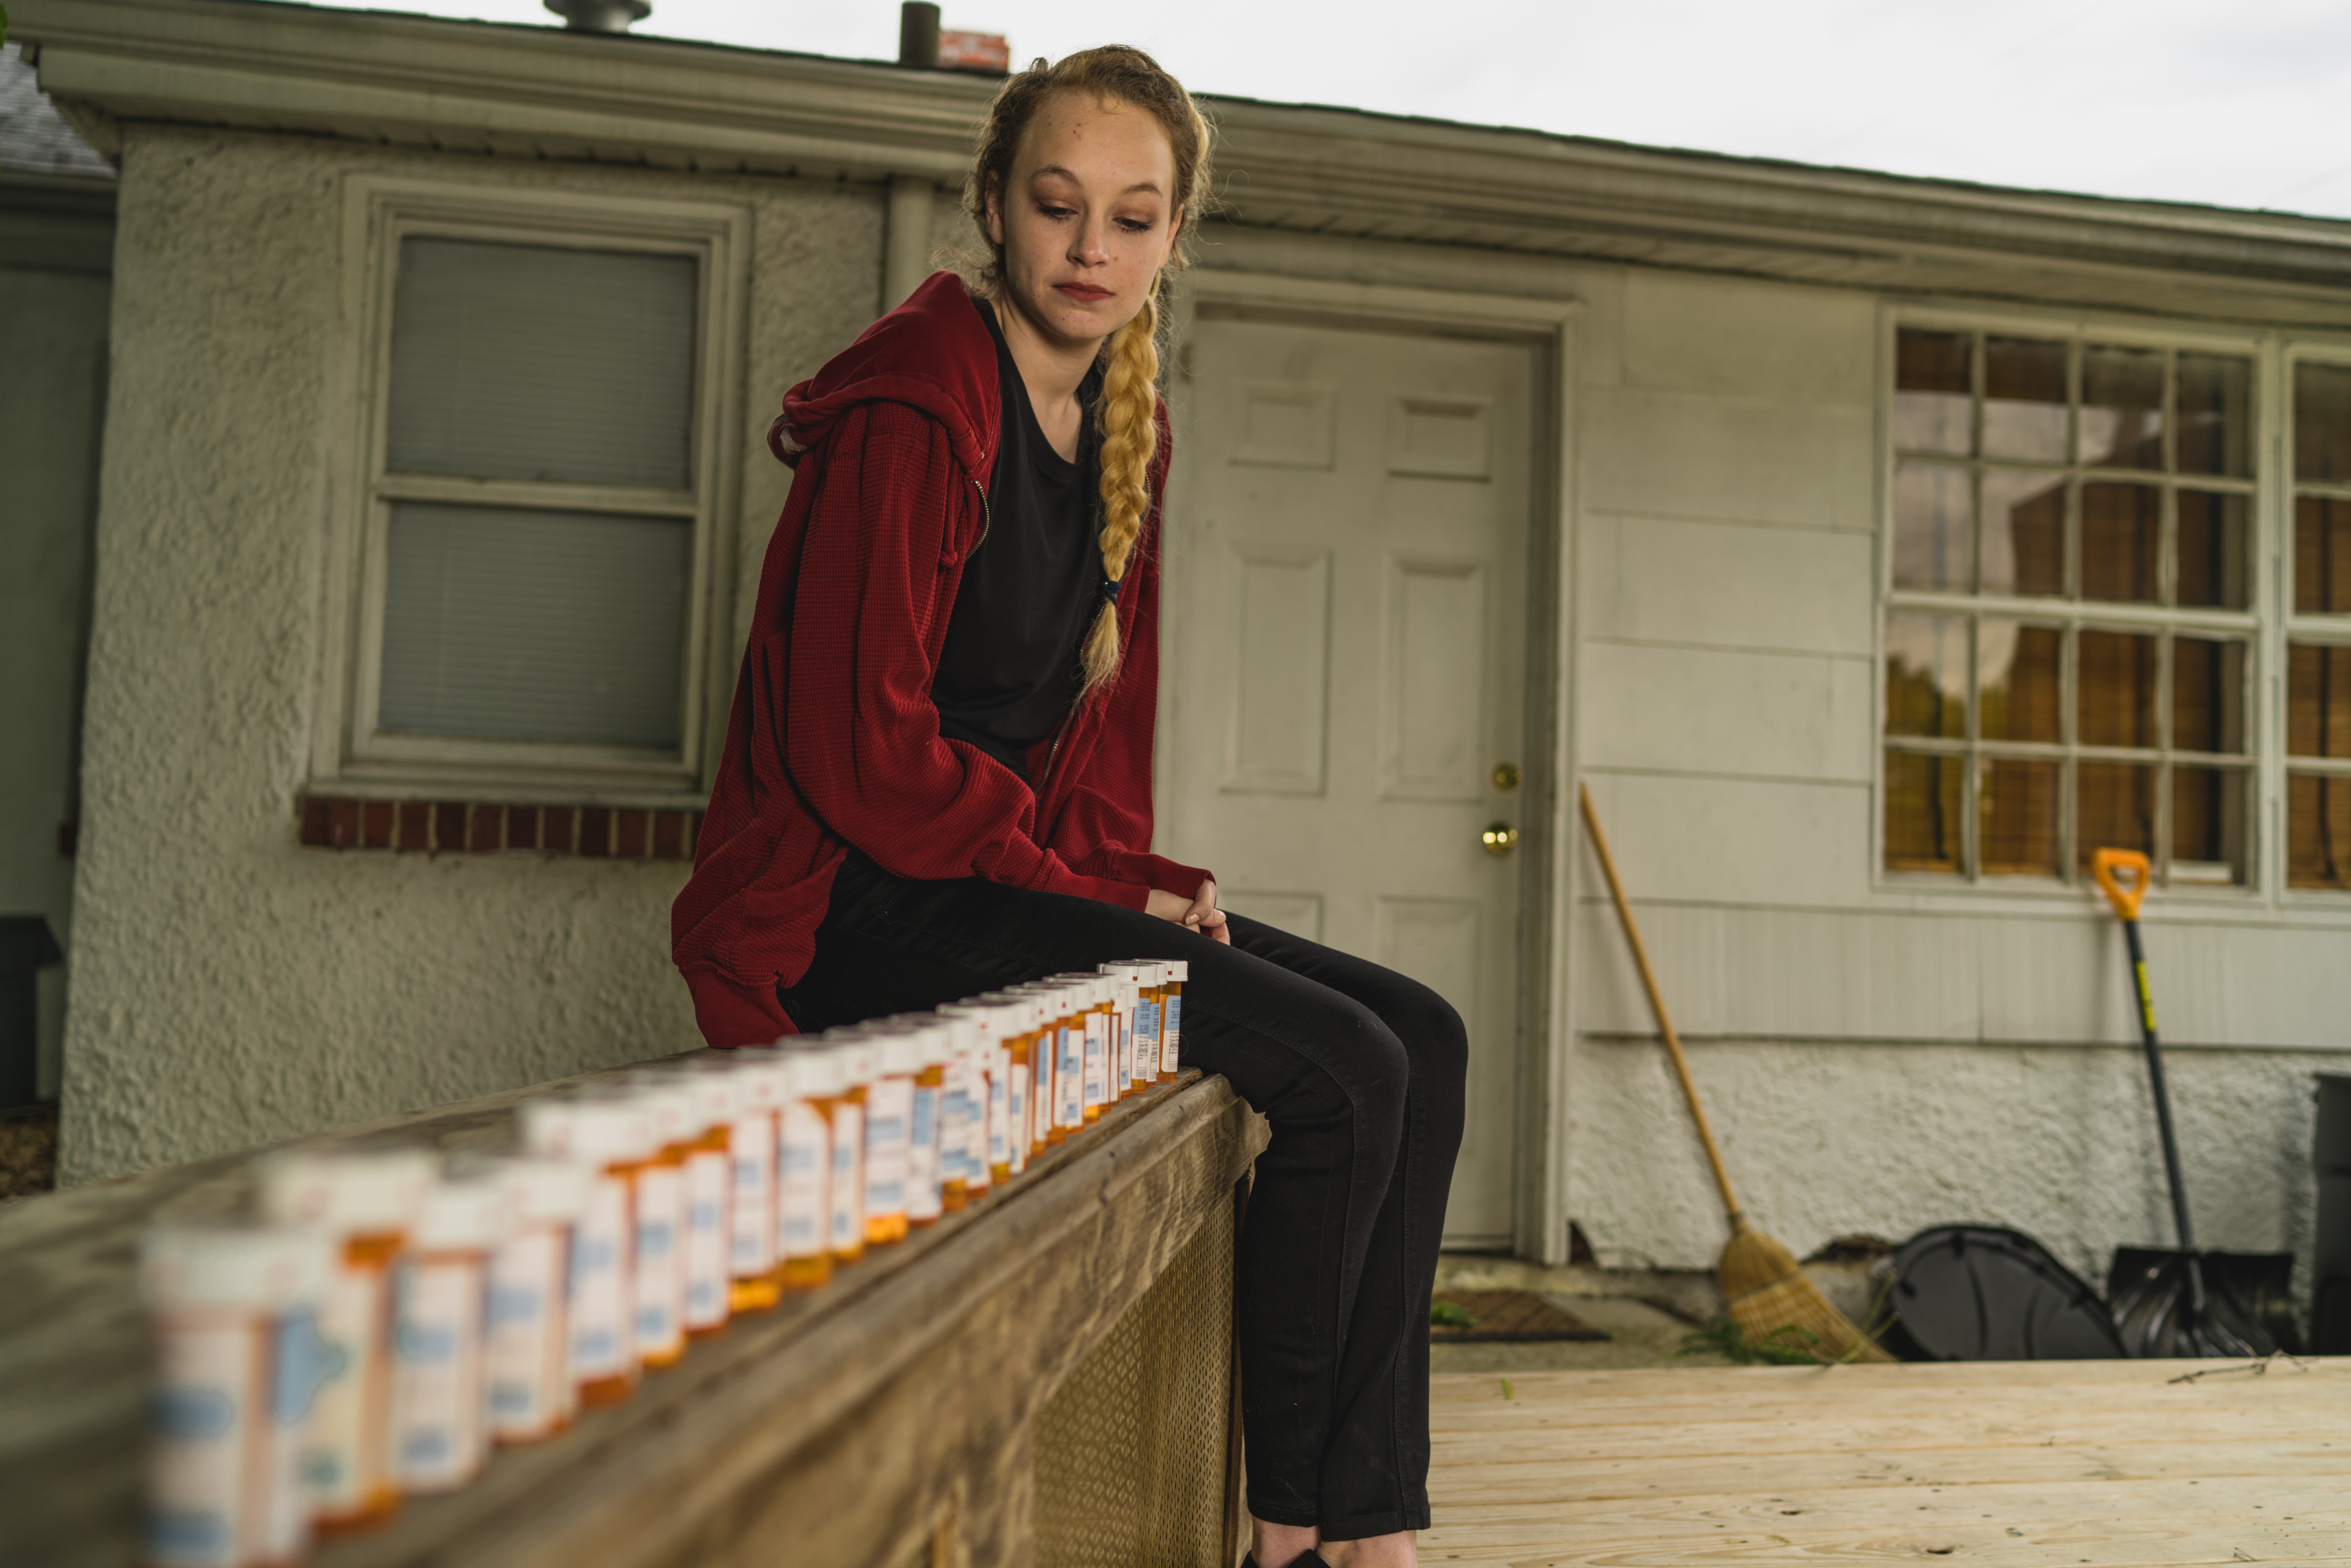 wide shot of woman on bench with medication bottles